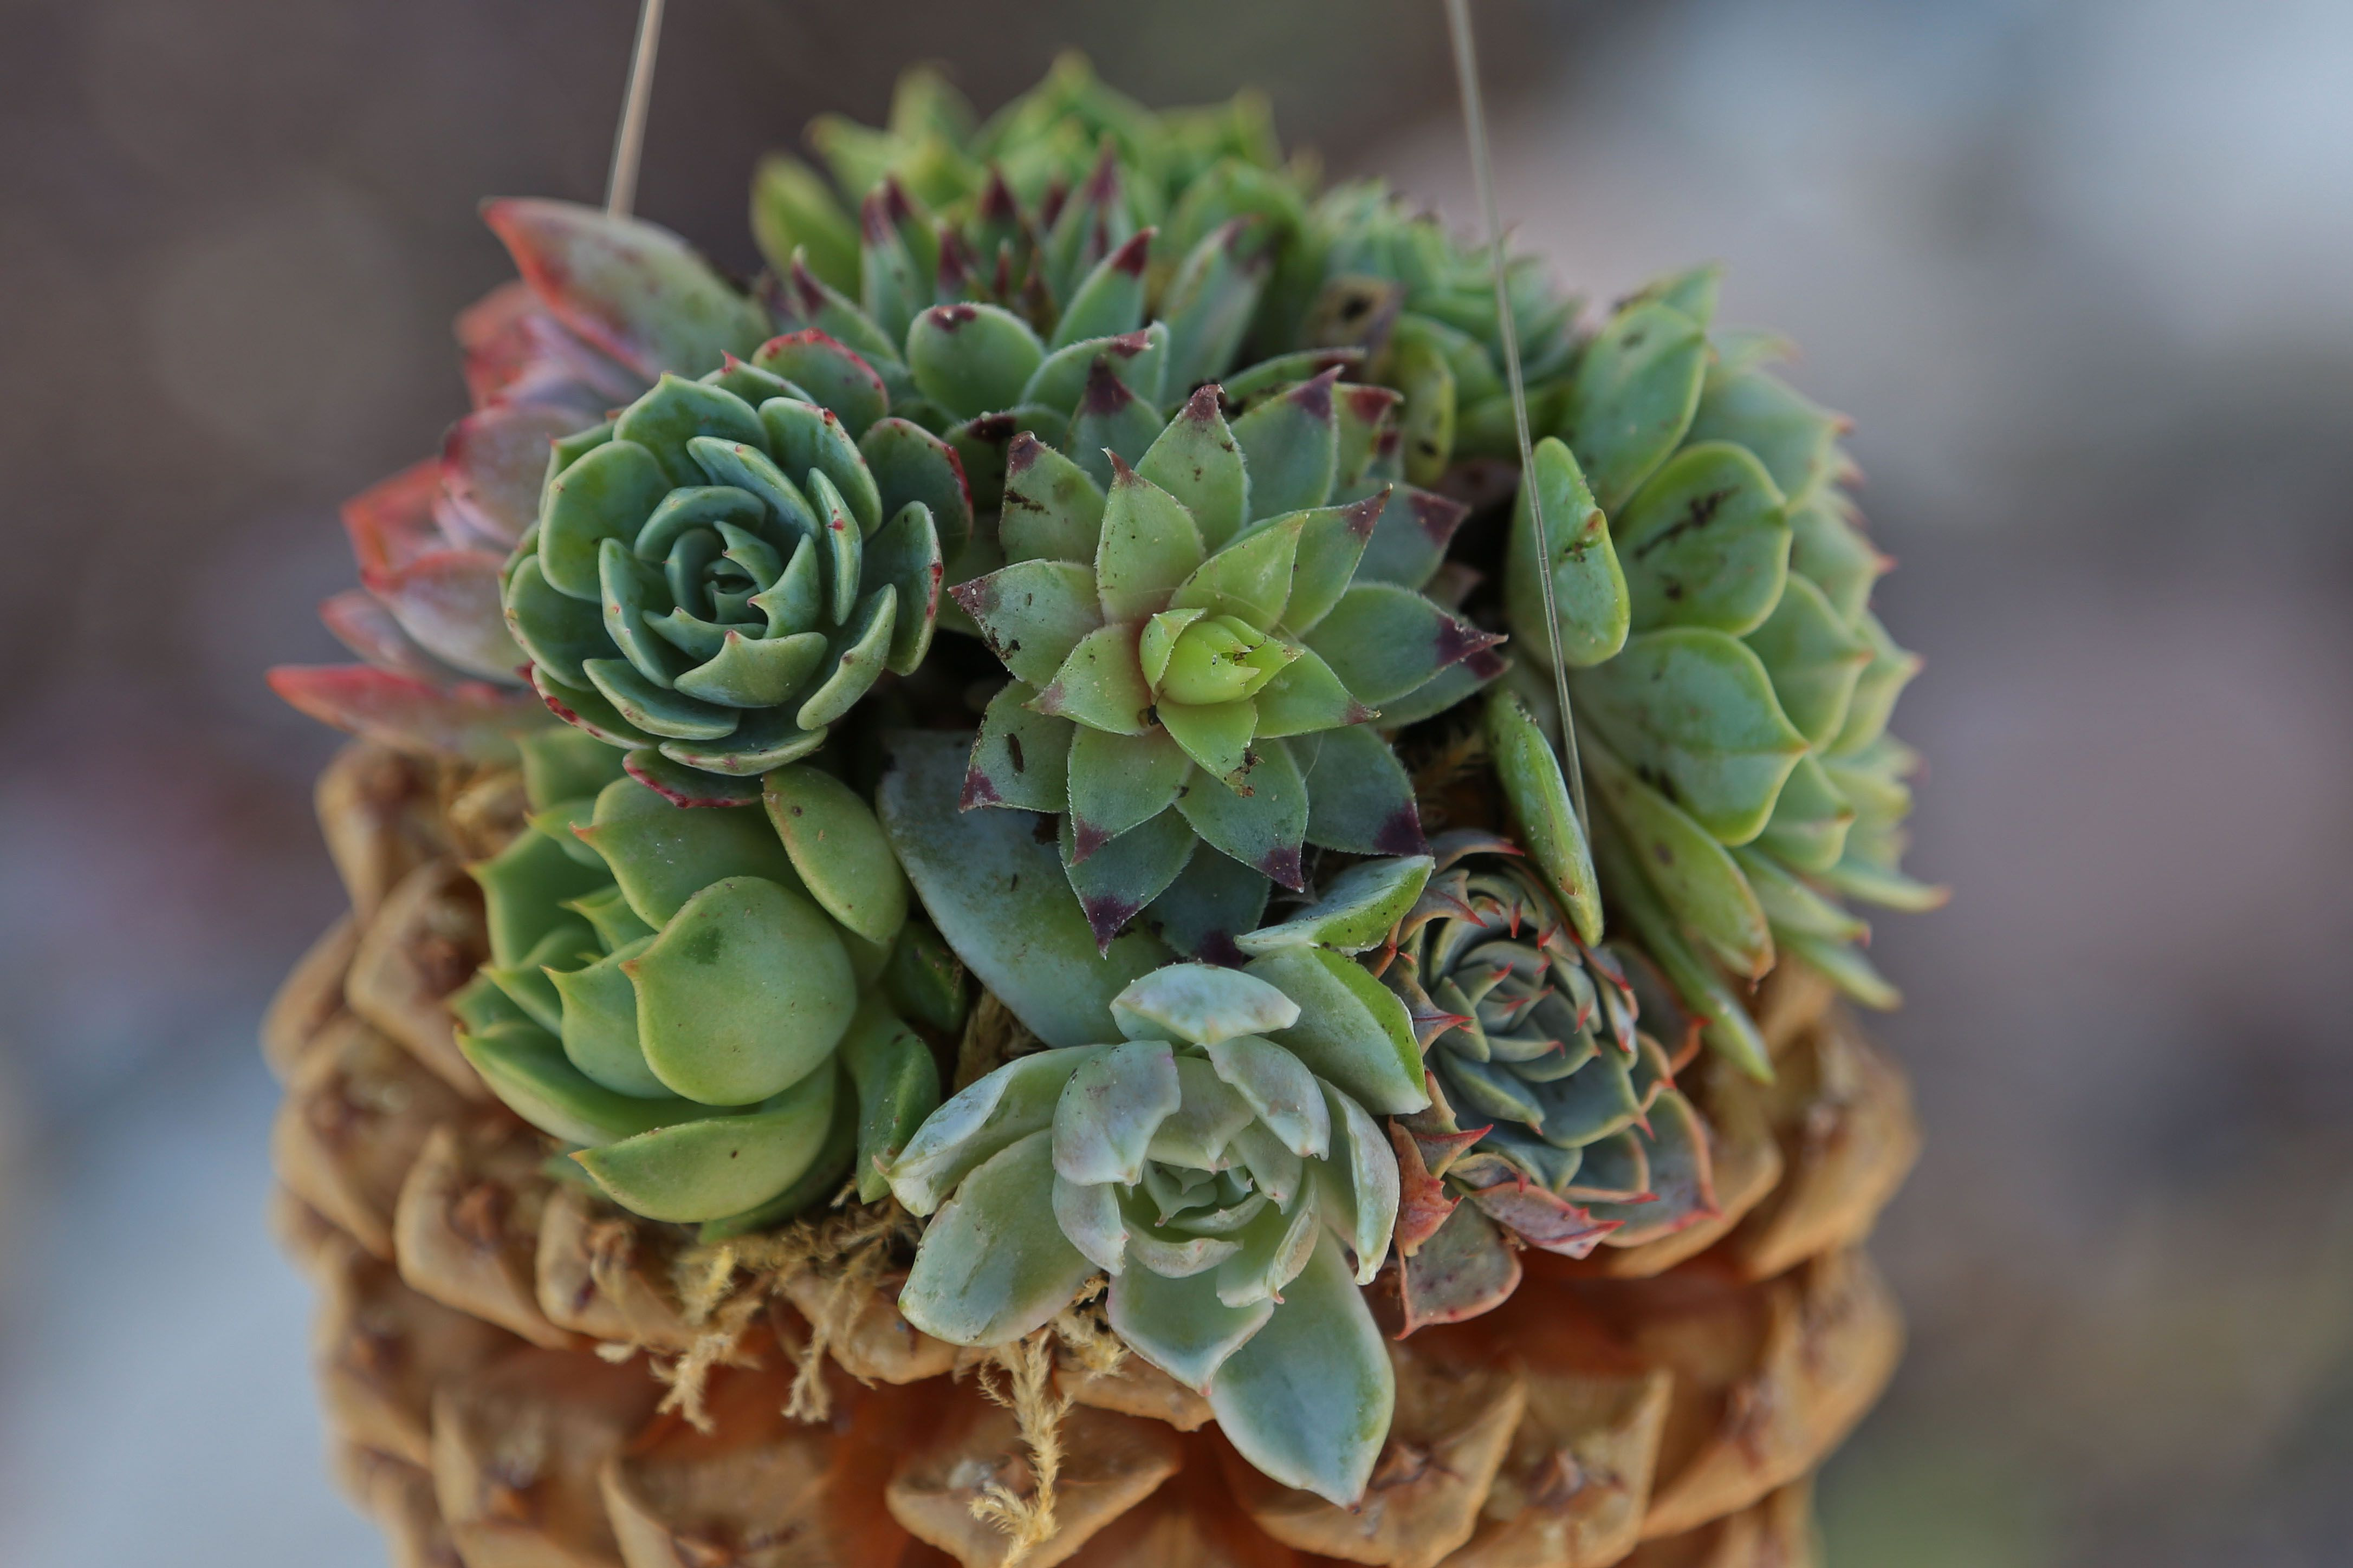 air plant vase ideas of 30 great tiny planters you can make yourself with 4 pine cone planter diy 58c98fe35f9b581d72c9f2a5